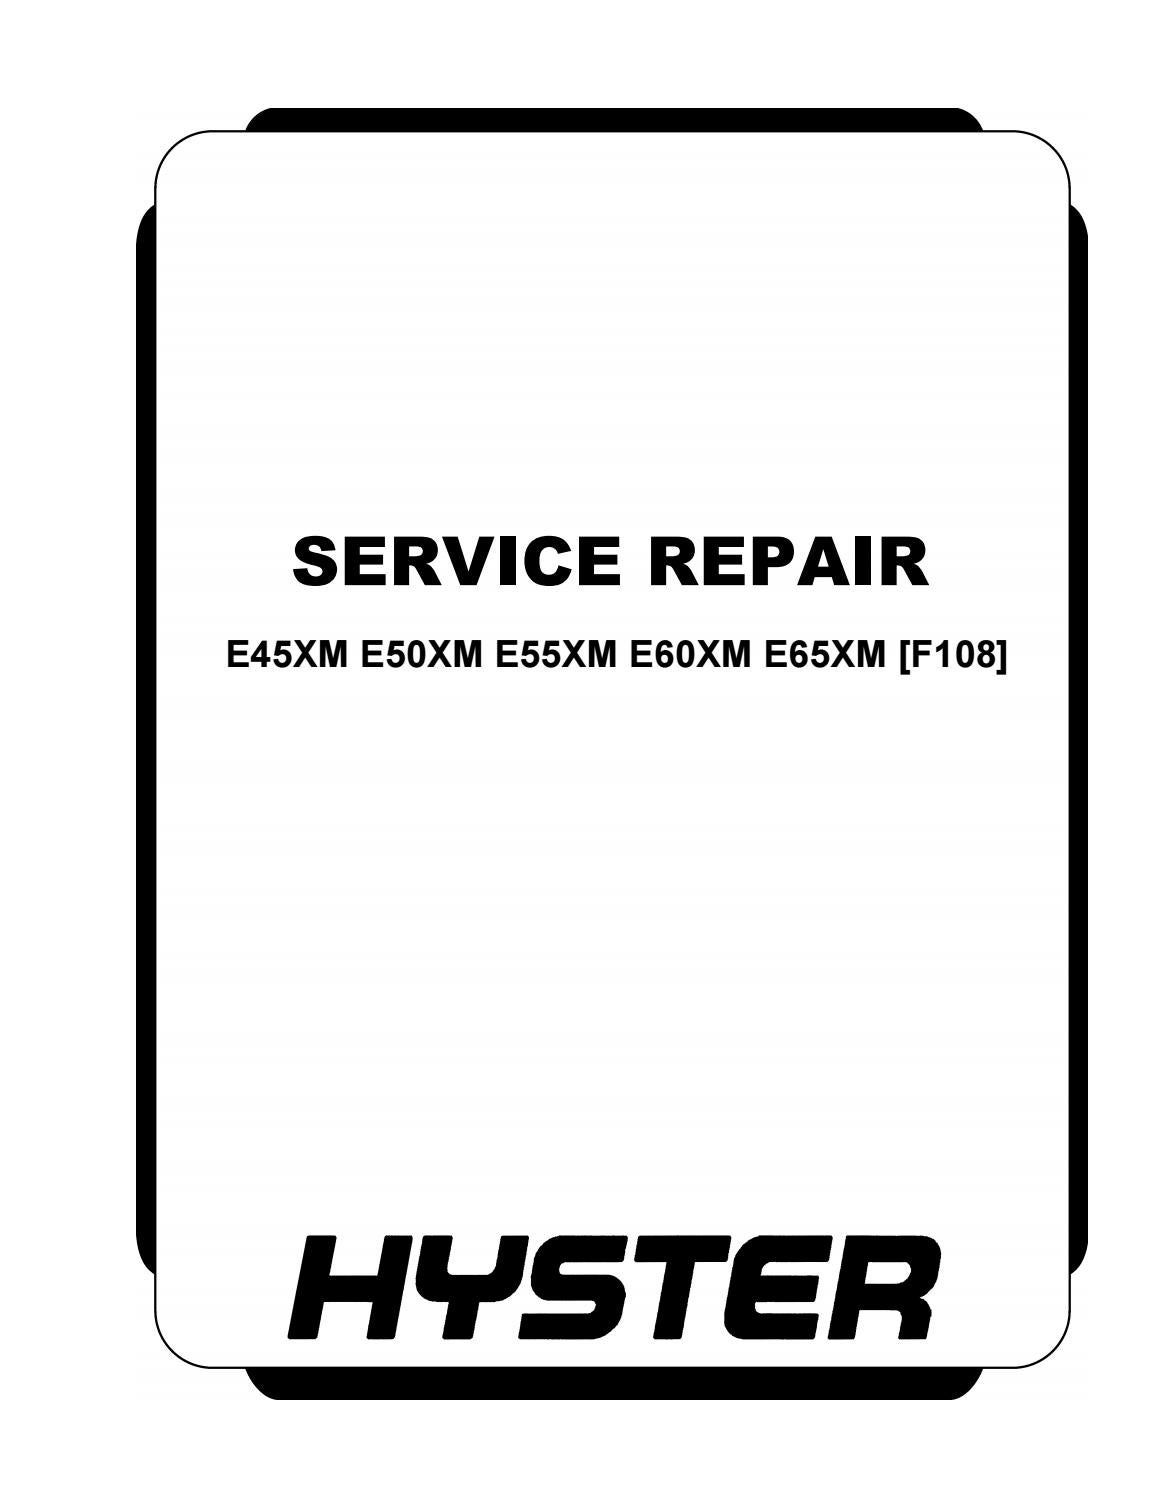 Hyster F004 (S100XM PRS) Forklift Service Repair Manual by 163114103 - issuu | Hyster 50 Forklift Starter Wiring Diagram Xm |  | Issuu